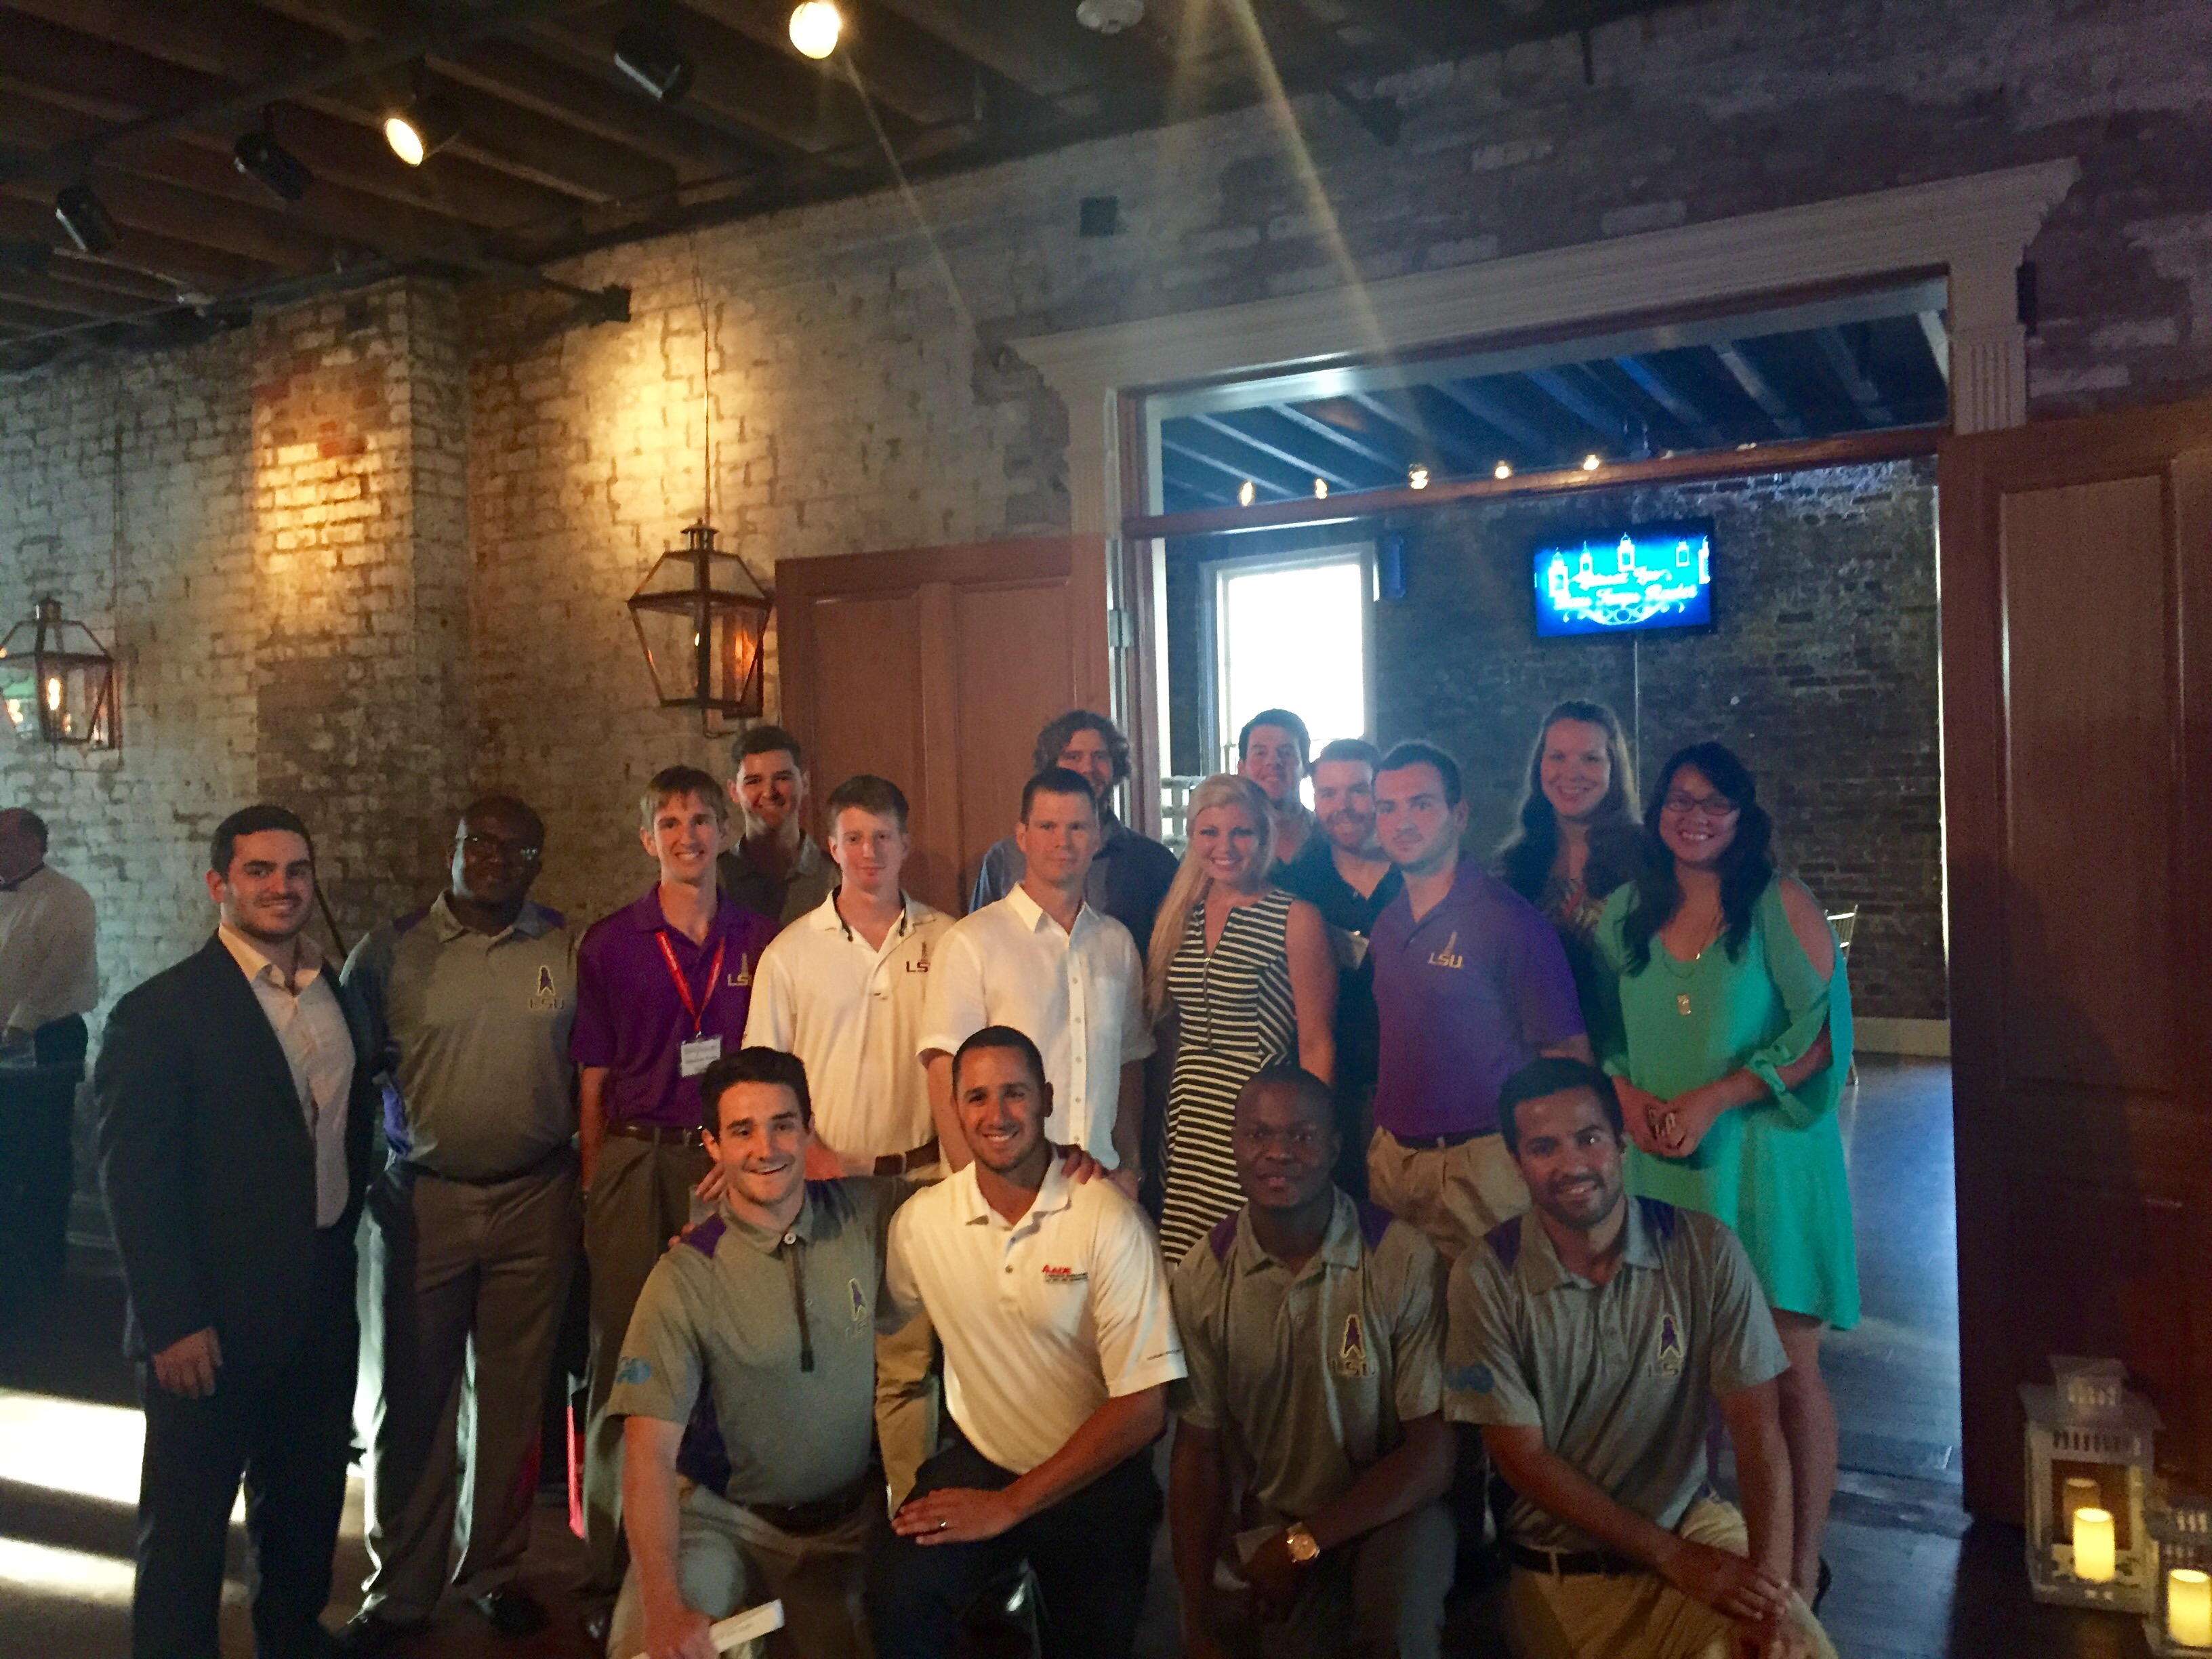 LSU SPE students attend the 19th annual Deepwater Technical Symposium and volunteer at the Charity Gala